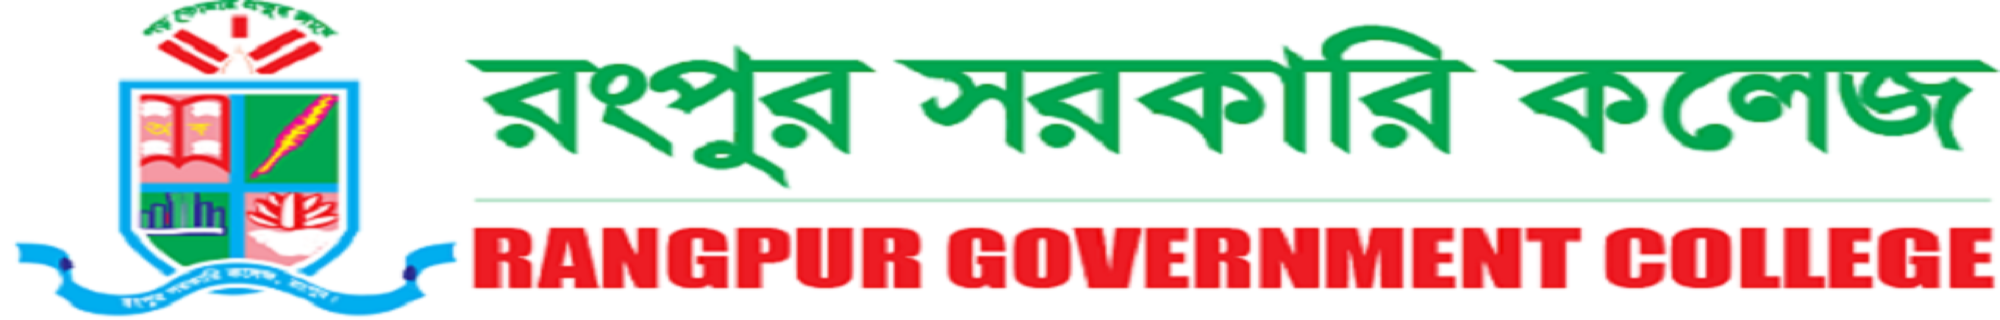 Rangpur Government College Online Exam Portal